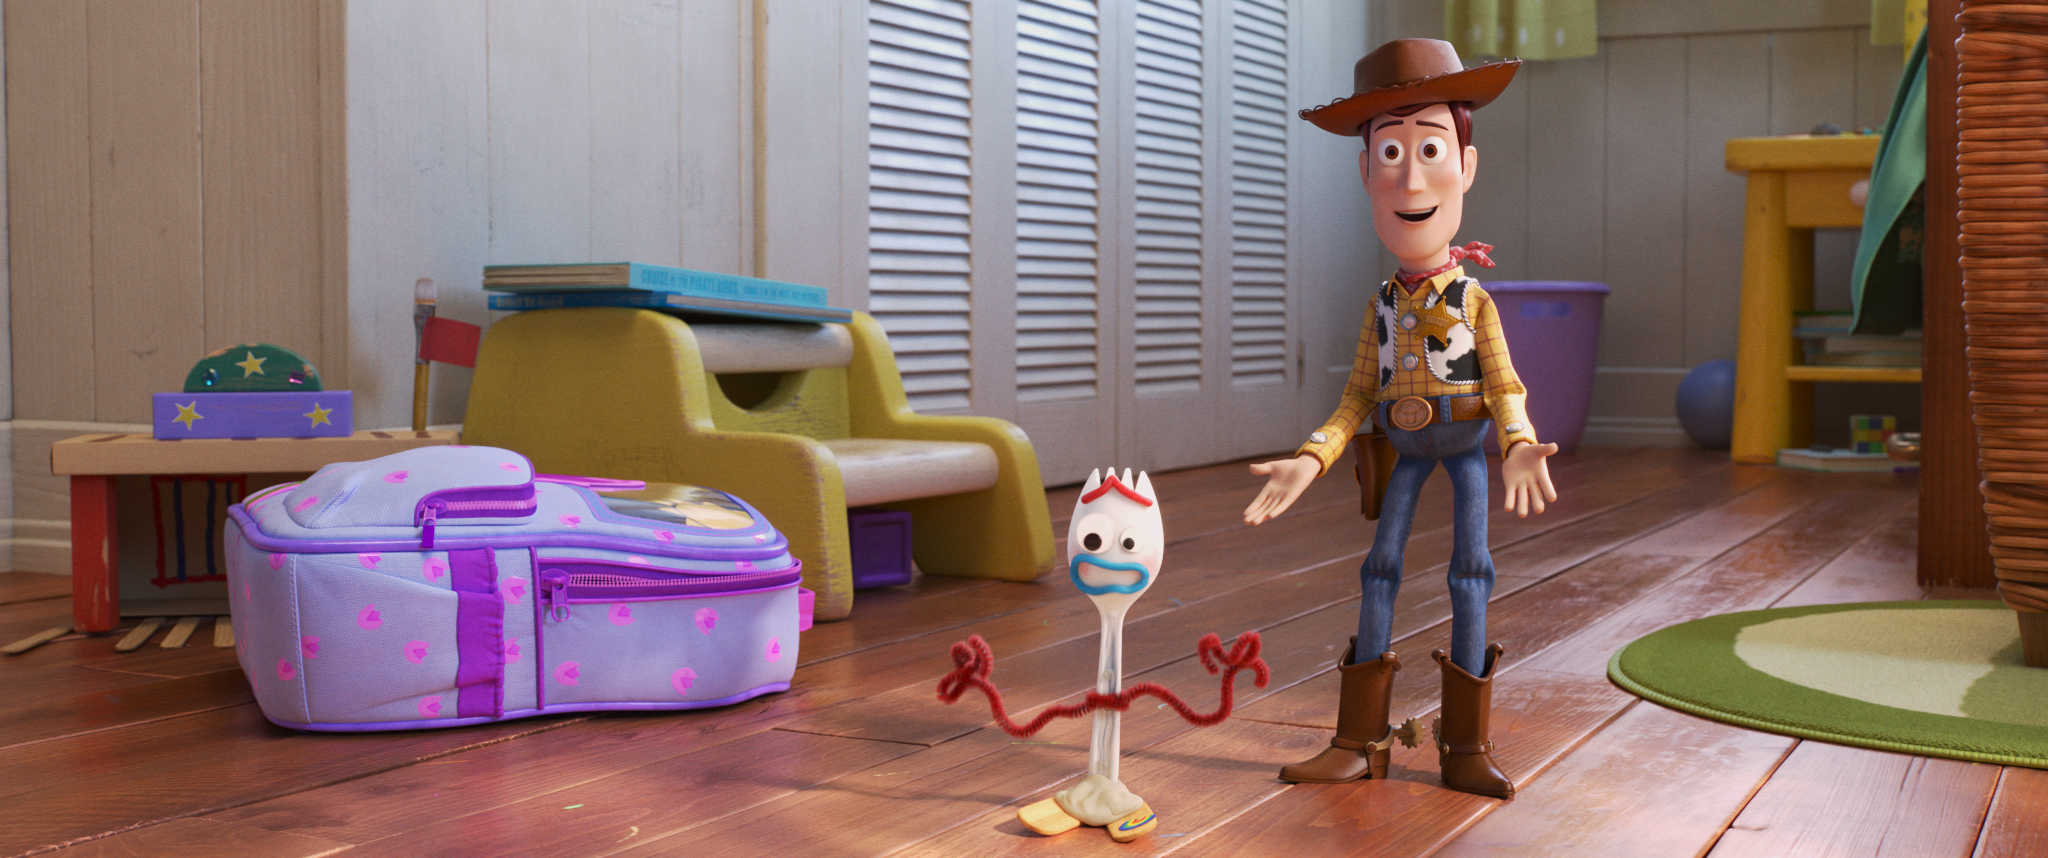 Toy Story 4 Soars To Infinity & Number 1